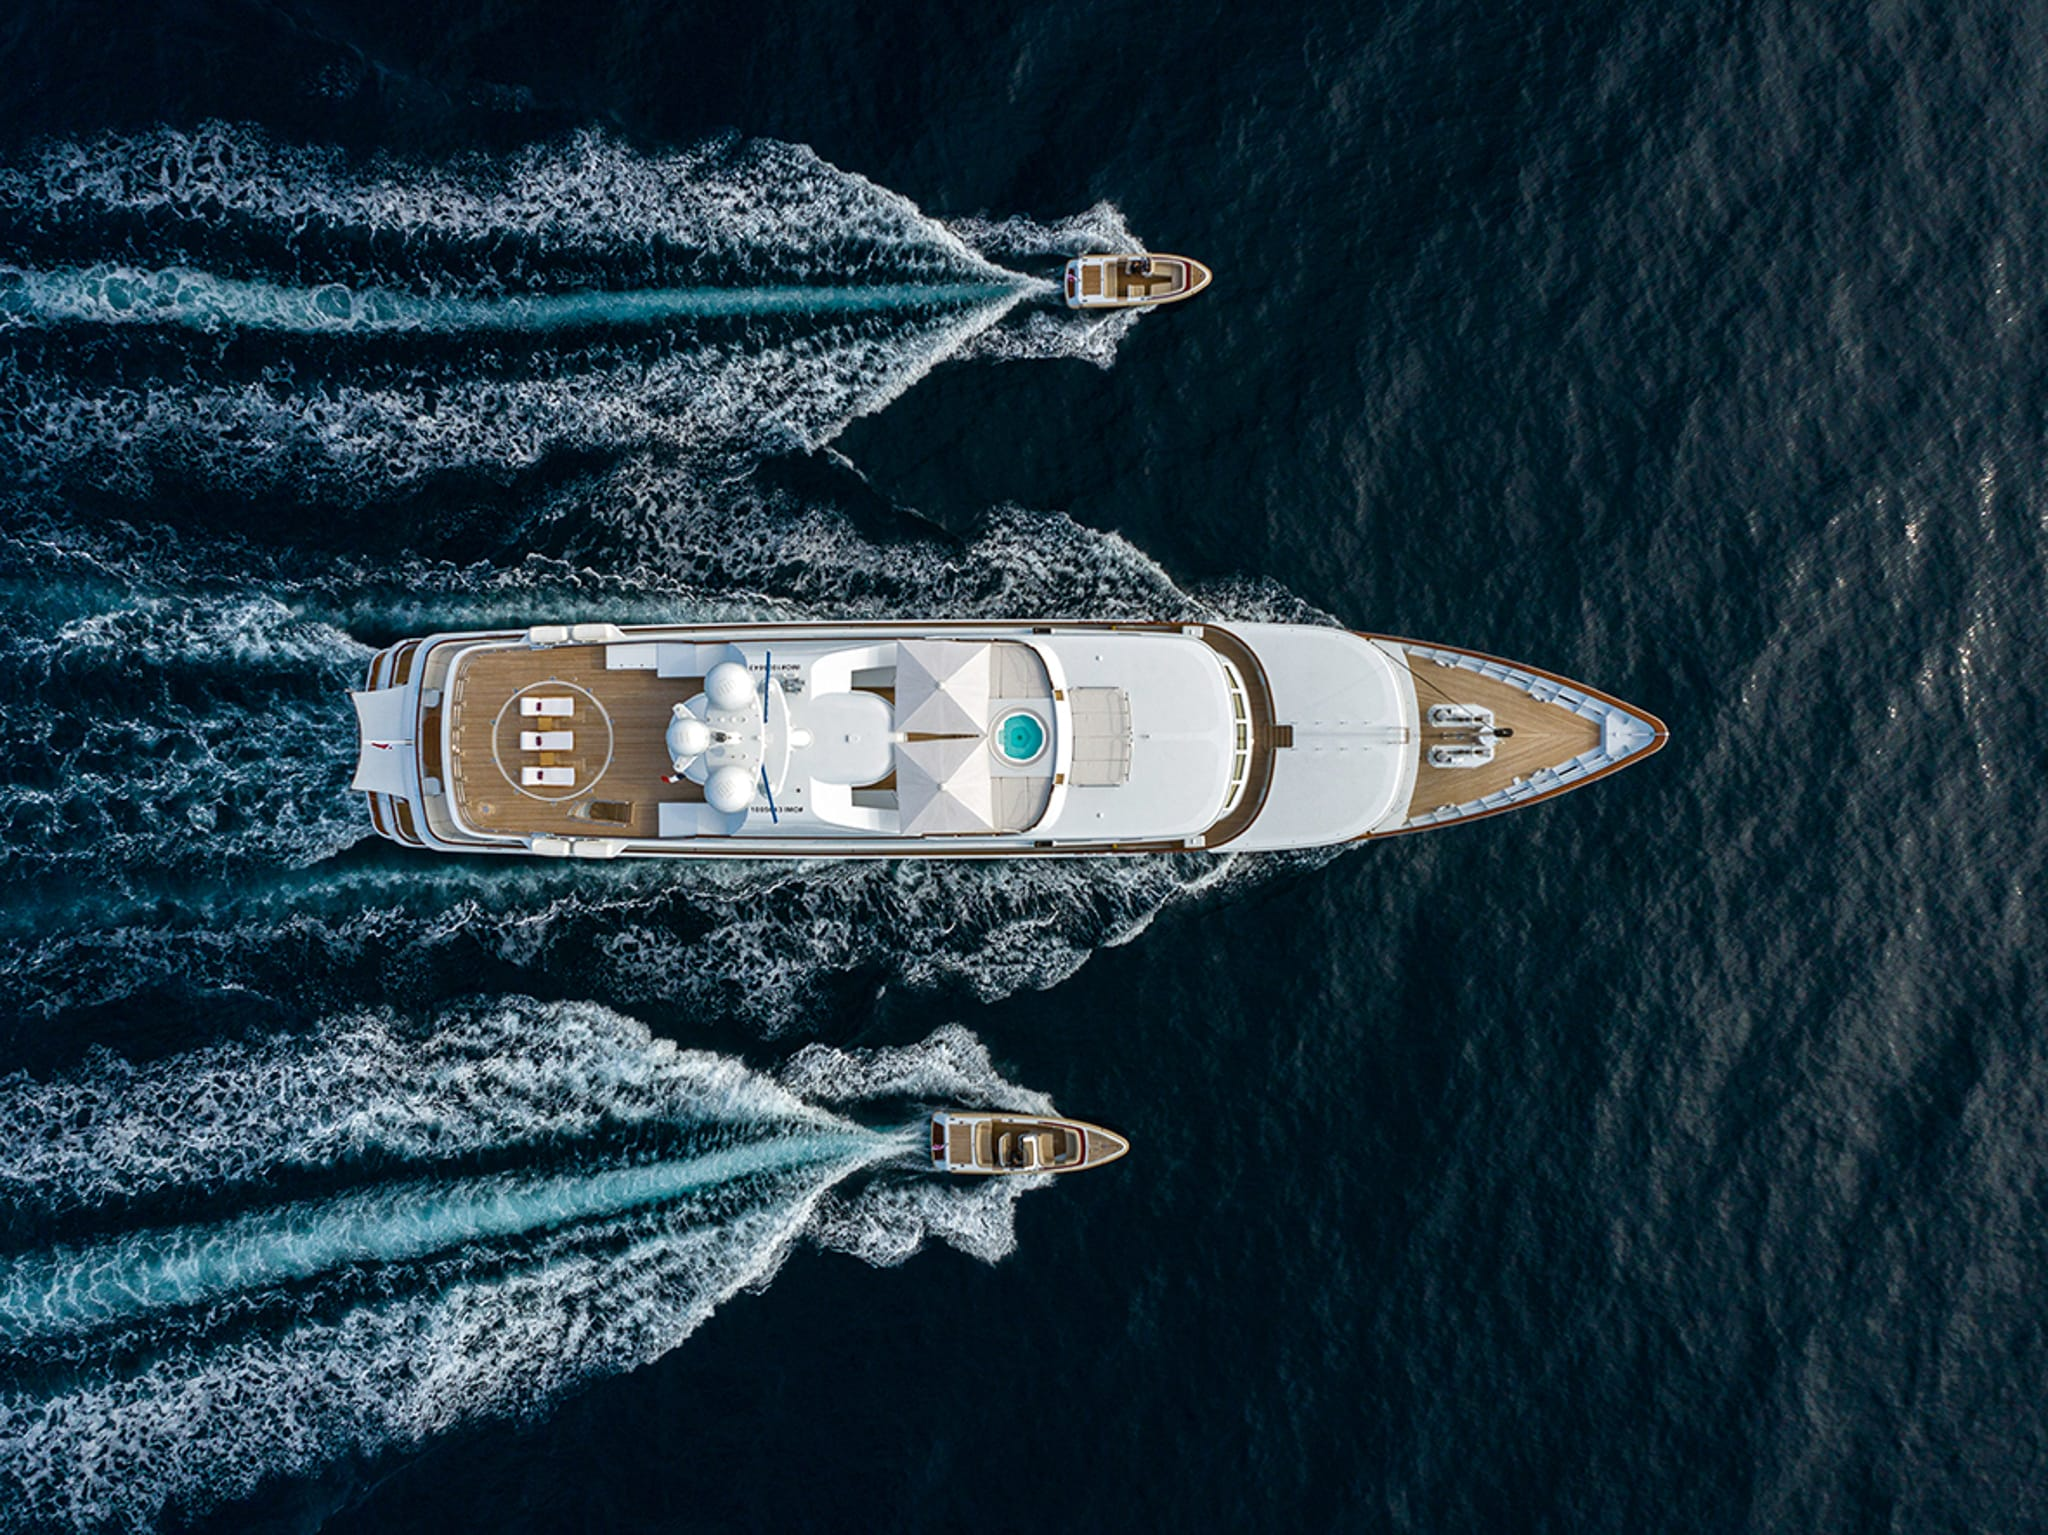 Yachting - Professional photographer on the Côte d'Azur